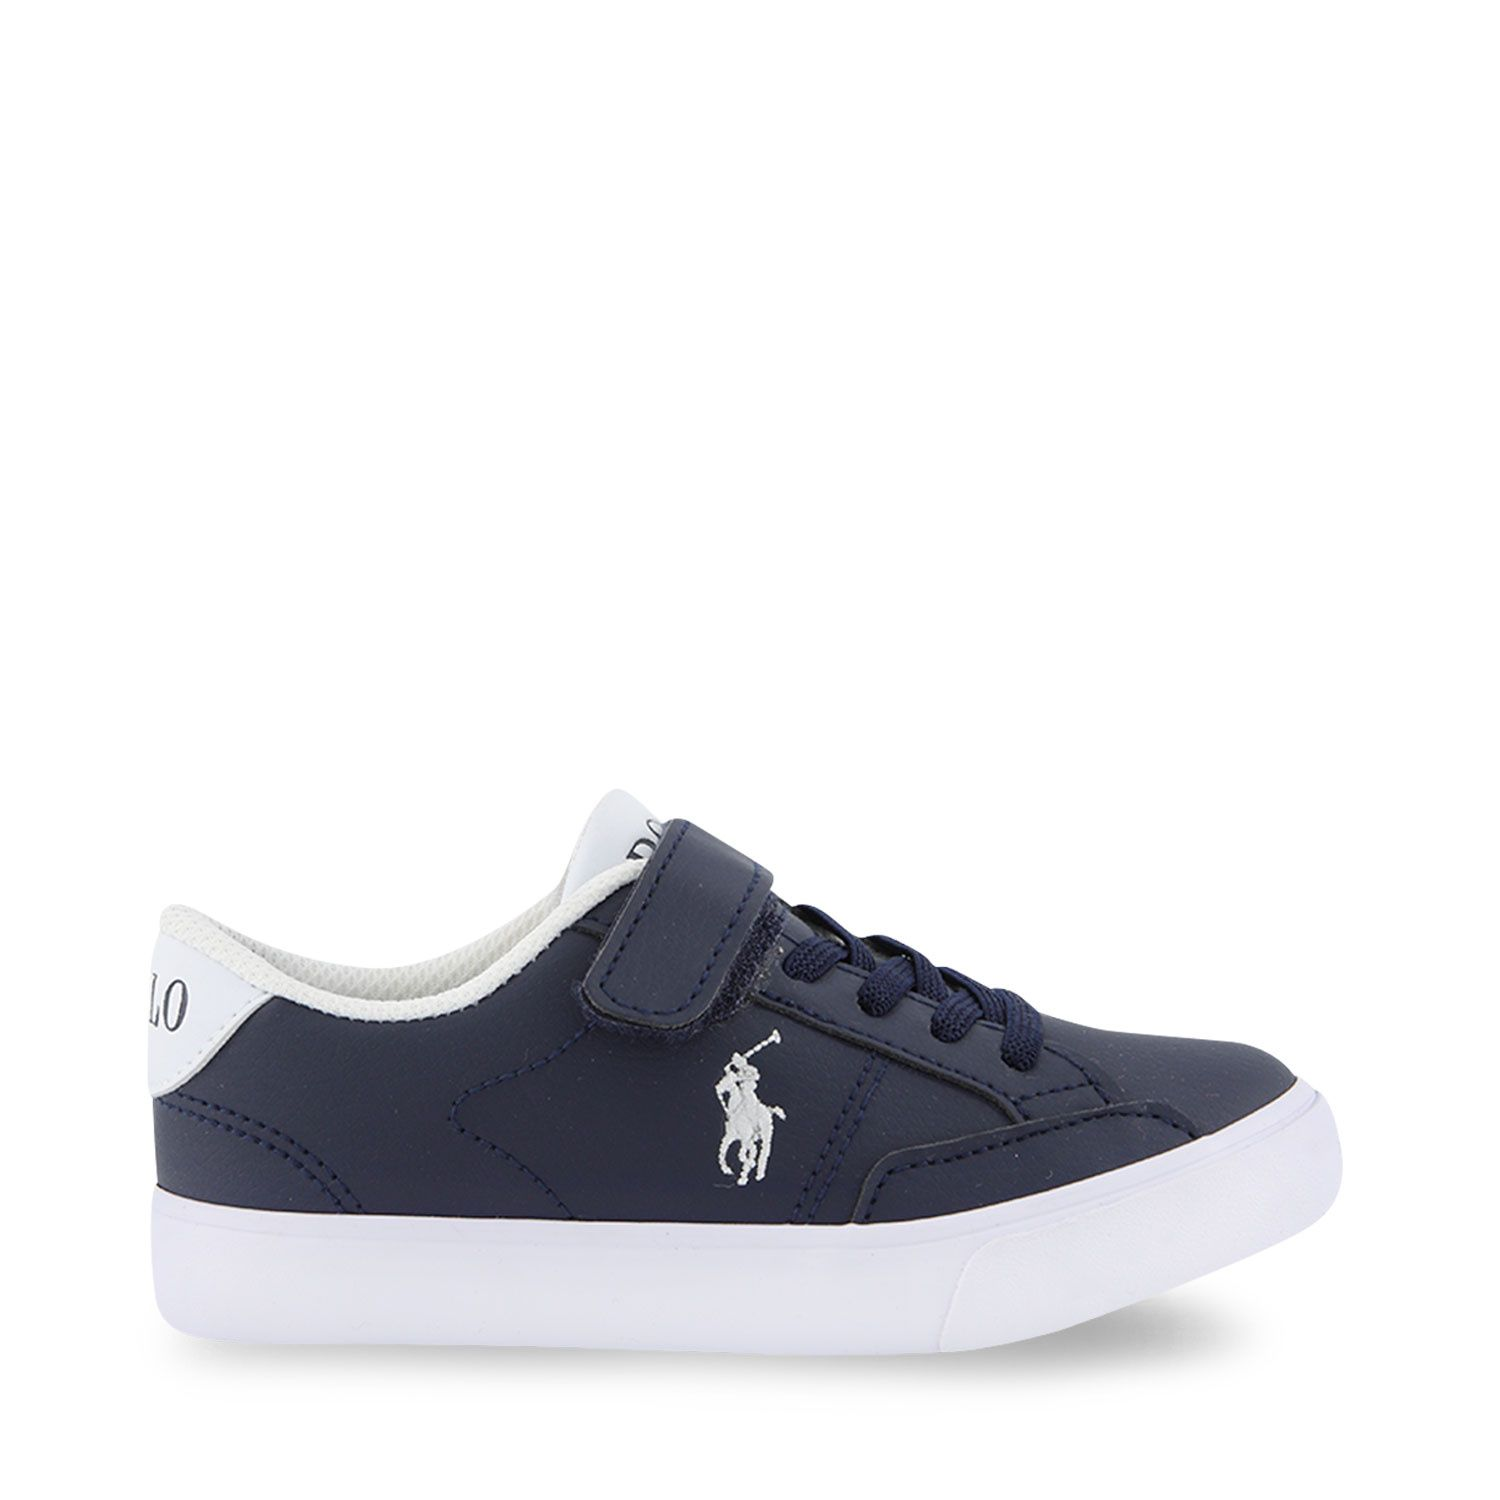 Picture of Ralph Lauren RF102984 kids sneakers navy